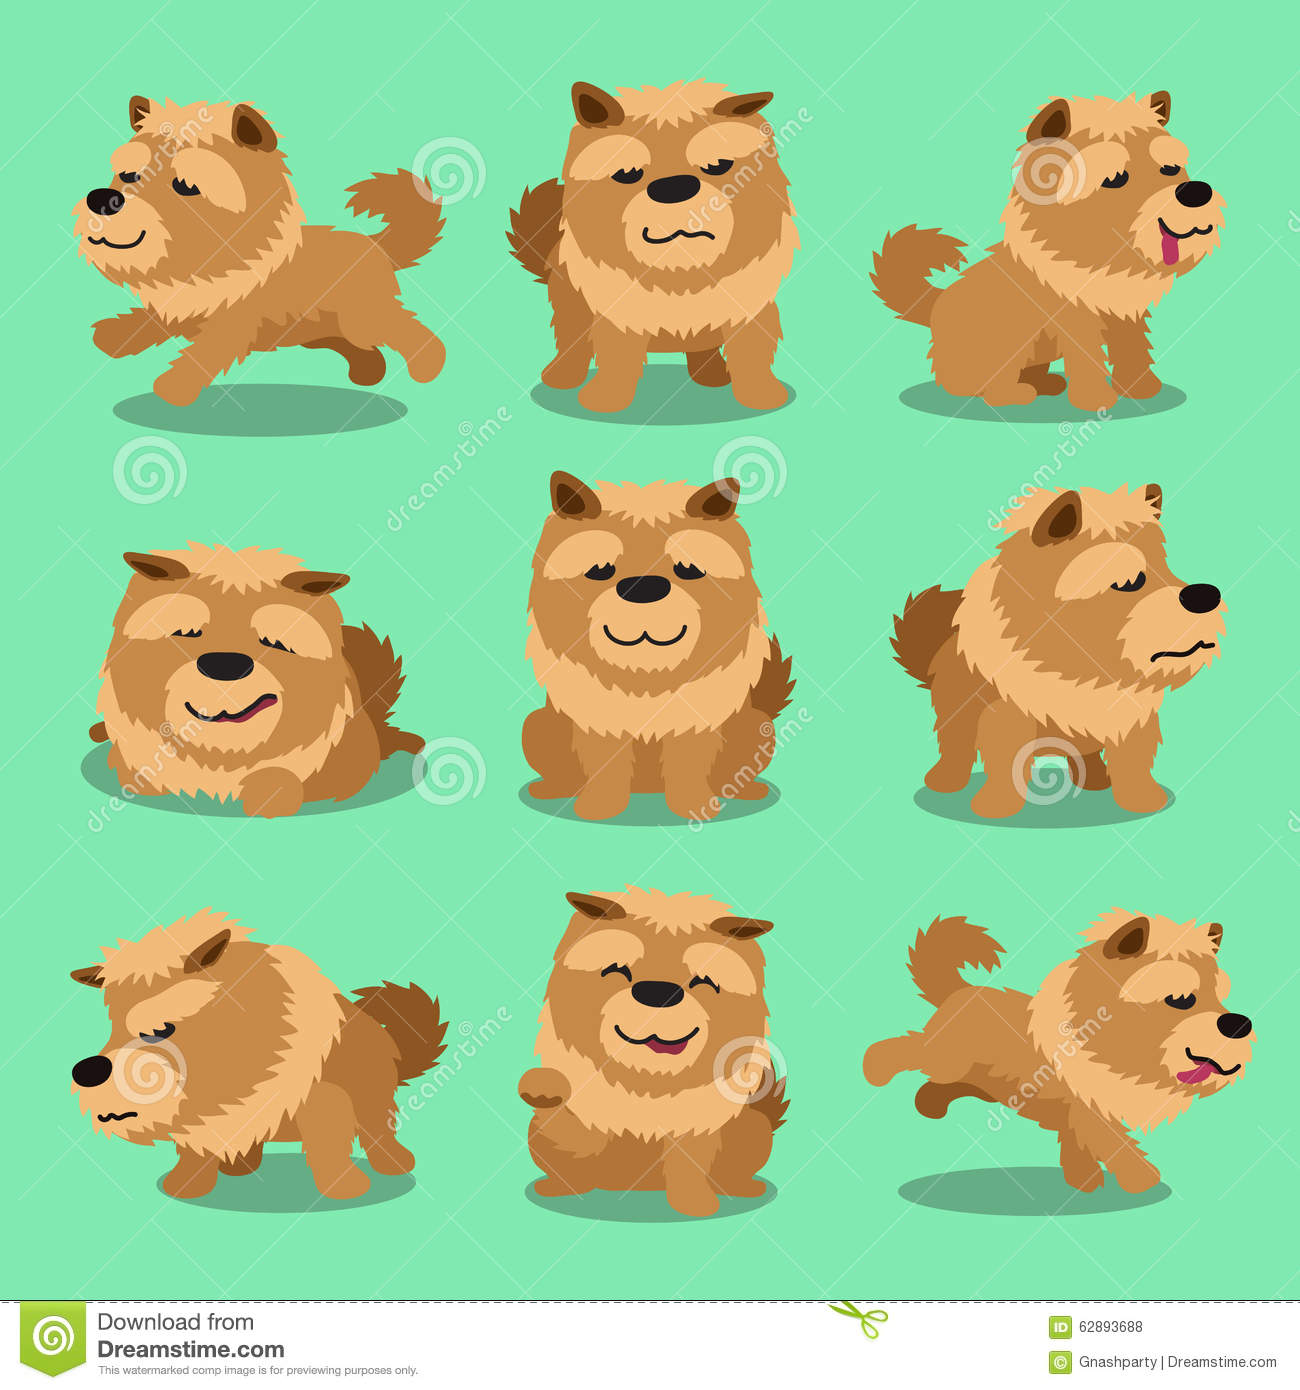 Cartoon Character Chow Chow Dog Poses Stock Vector - Image: 62893688